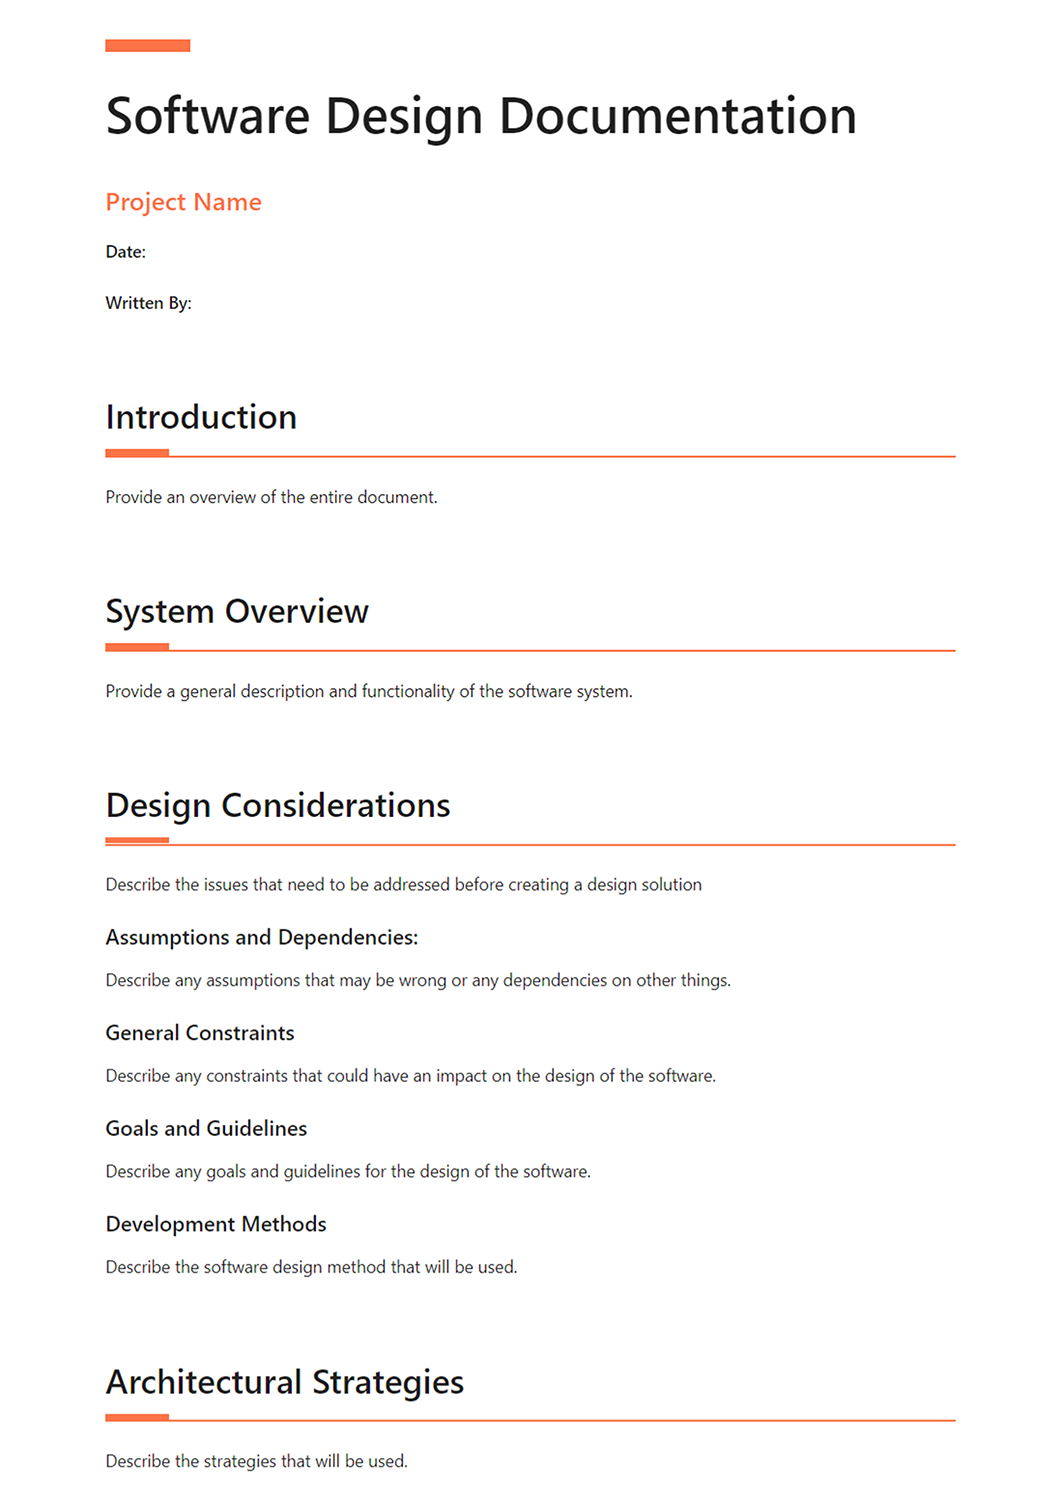 Software Design Document What Why And How Template Included Bit Blog